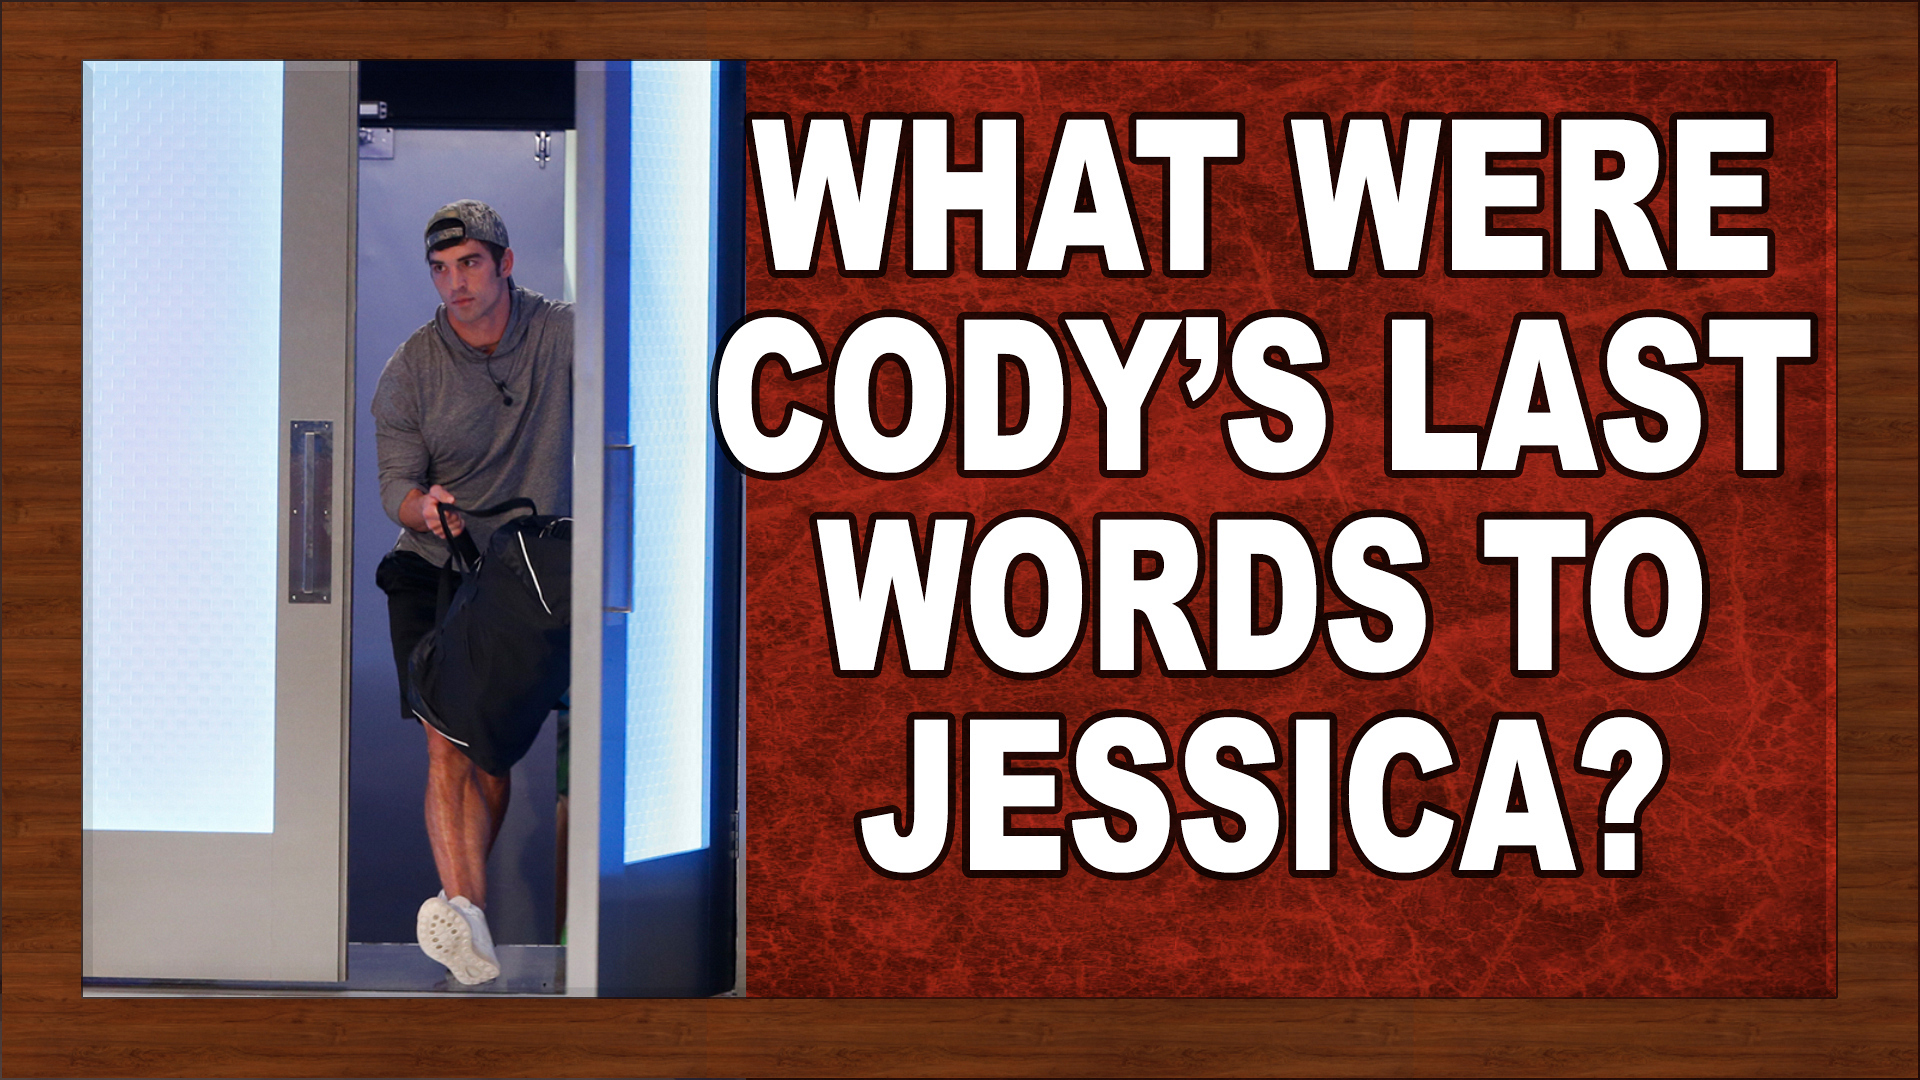 What were Cody's last words to Jessica?